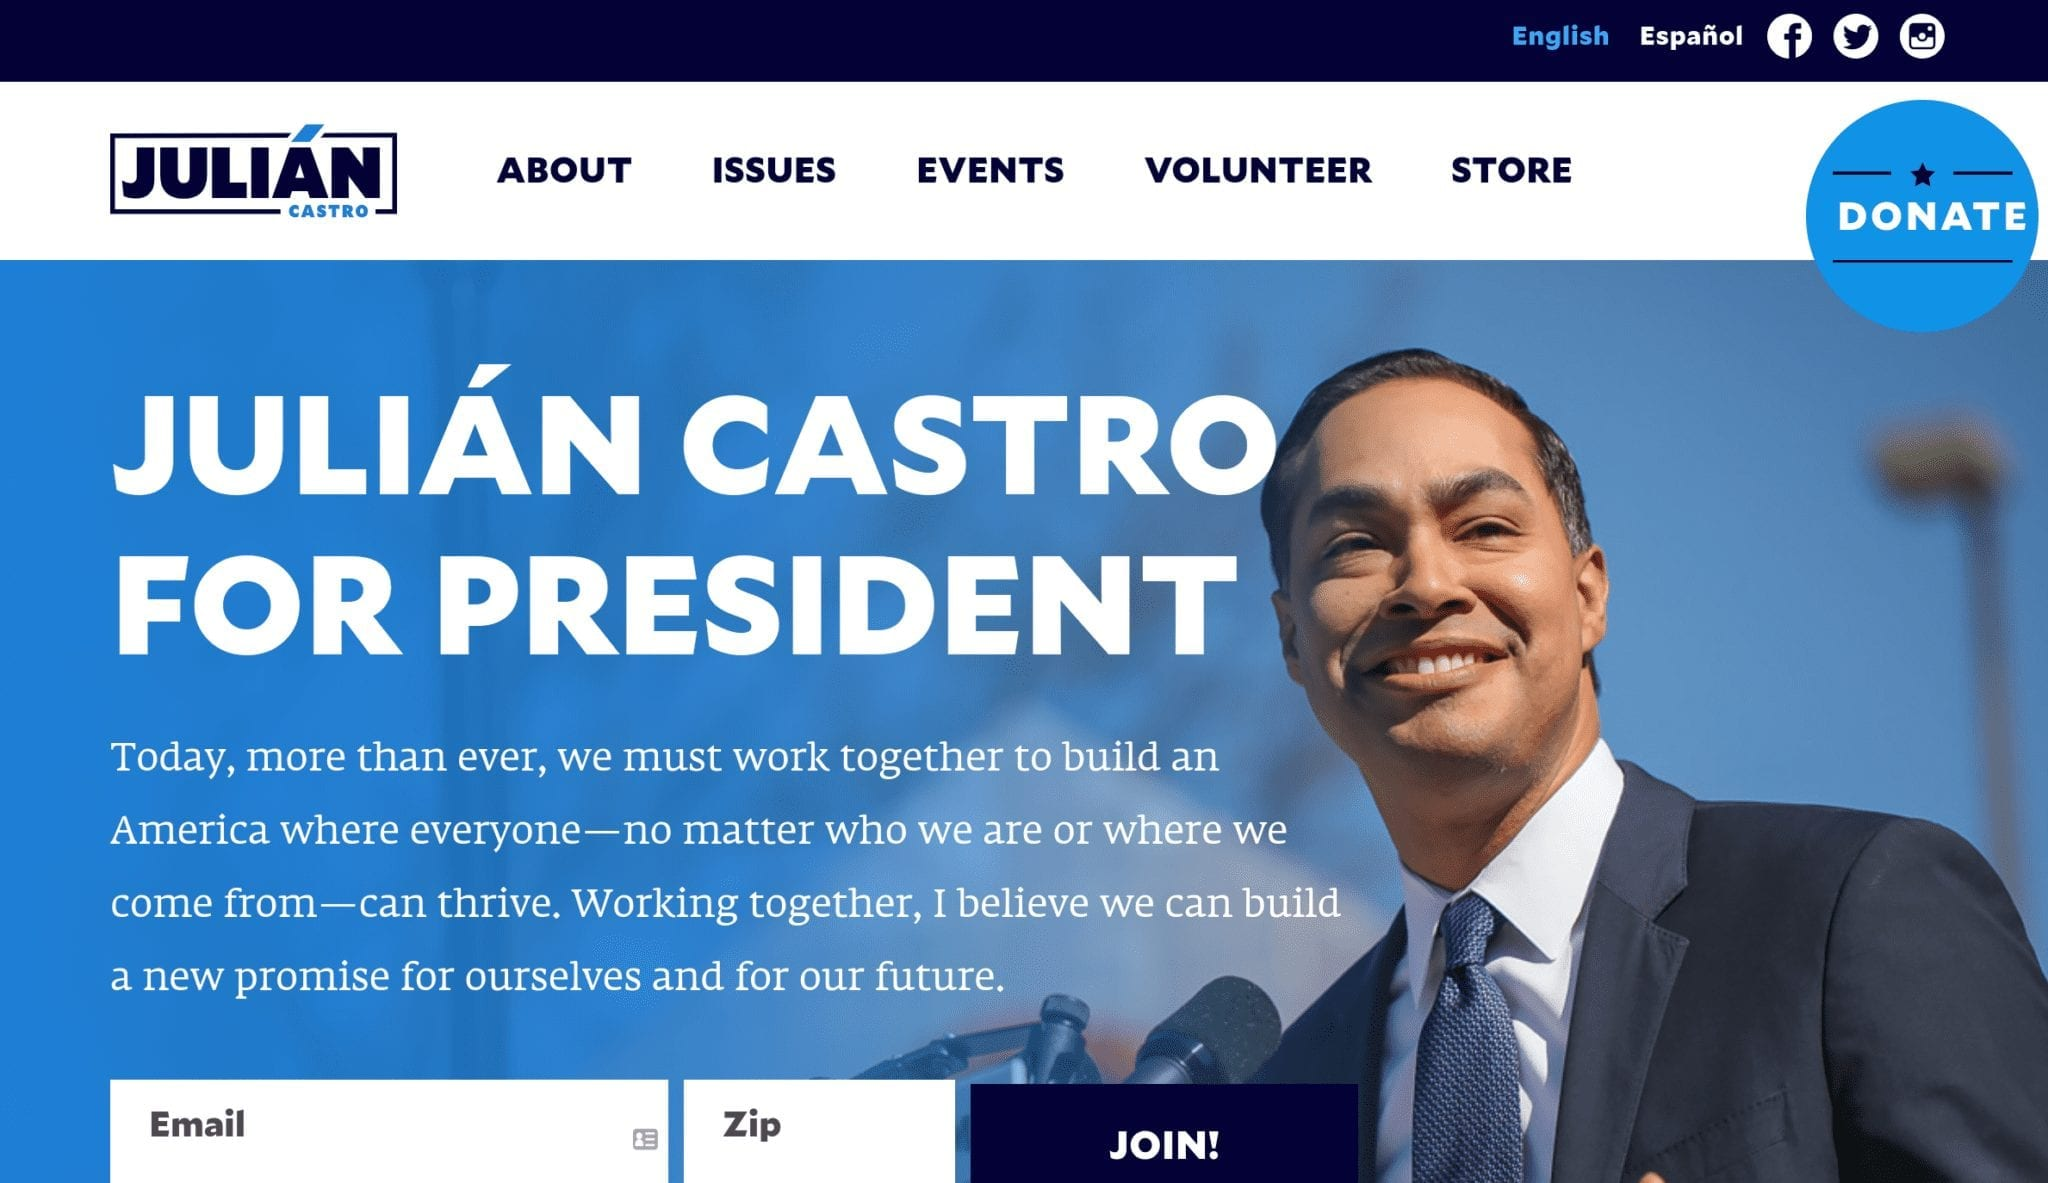 Julian Castro 2020 campaign website